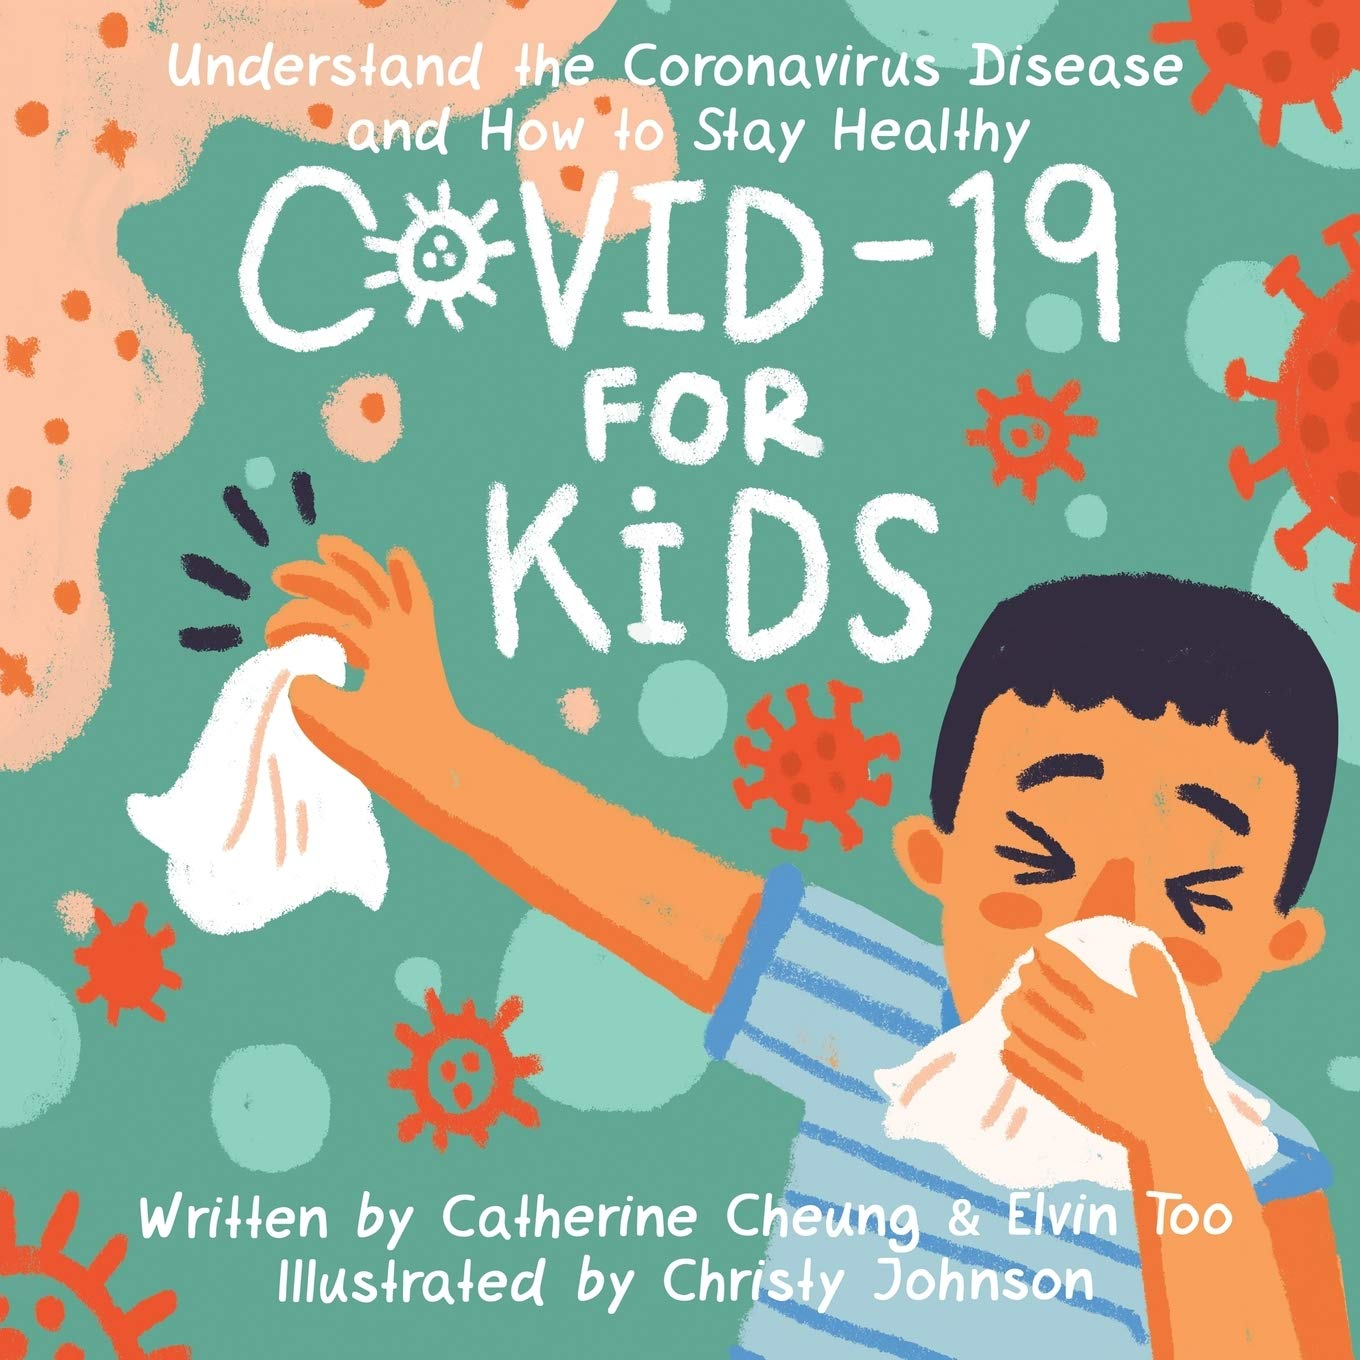 COVID-19 For Kids: Understand The Coronavirus Disease And How To Stay Healthy